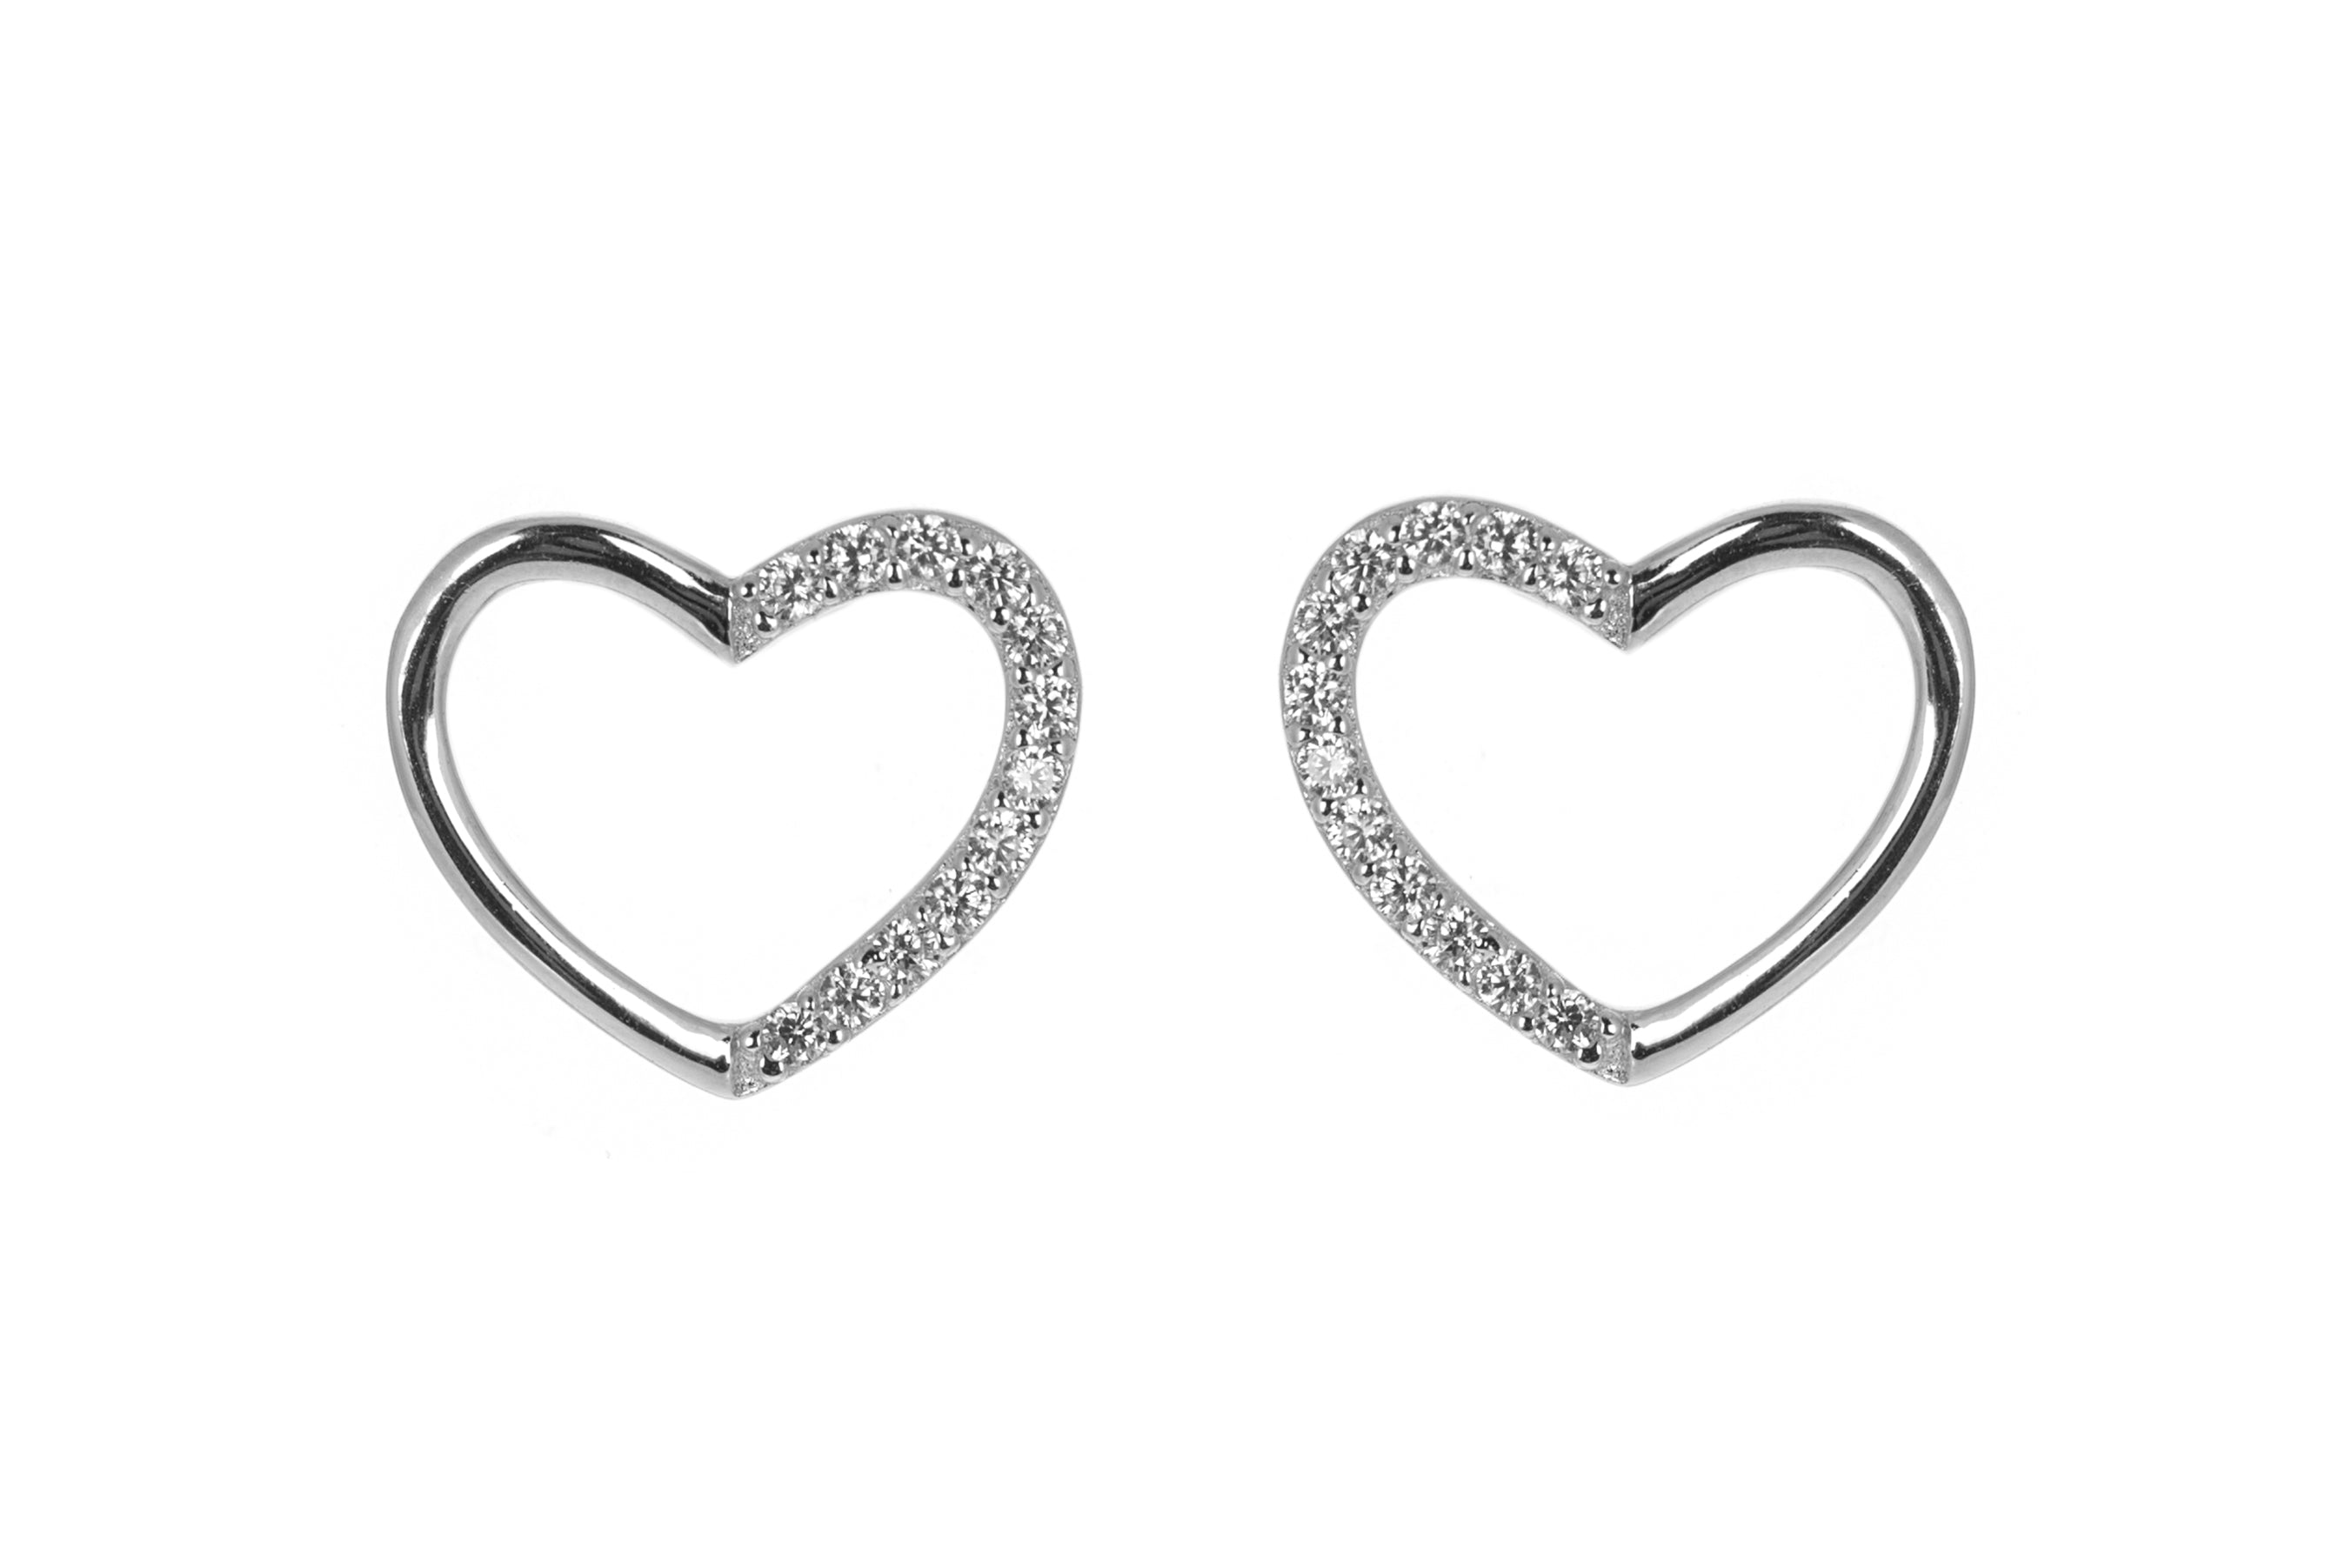 Antithesis Sterling Silver Open Heart Earrings